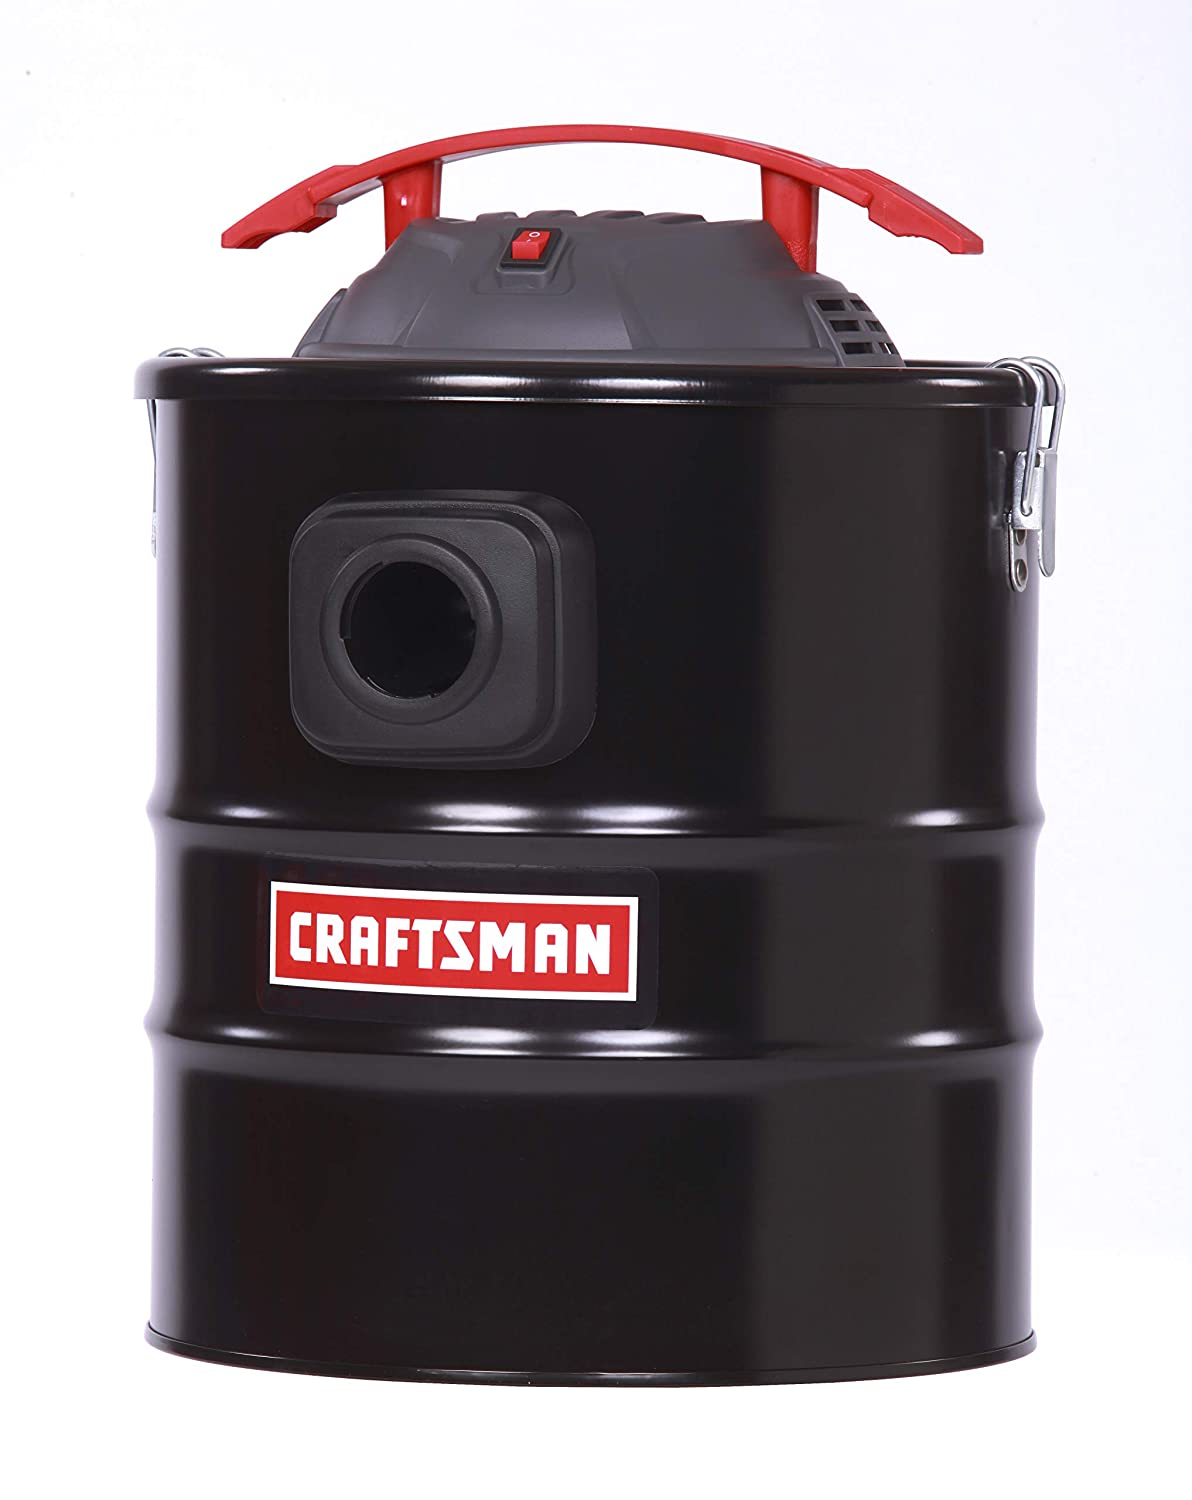 CRAFTSMAN 17585 5 gallon 3 Peak Hp Ash Vacuum with Attachments